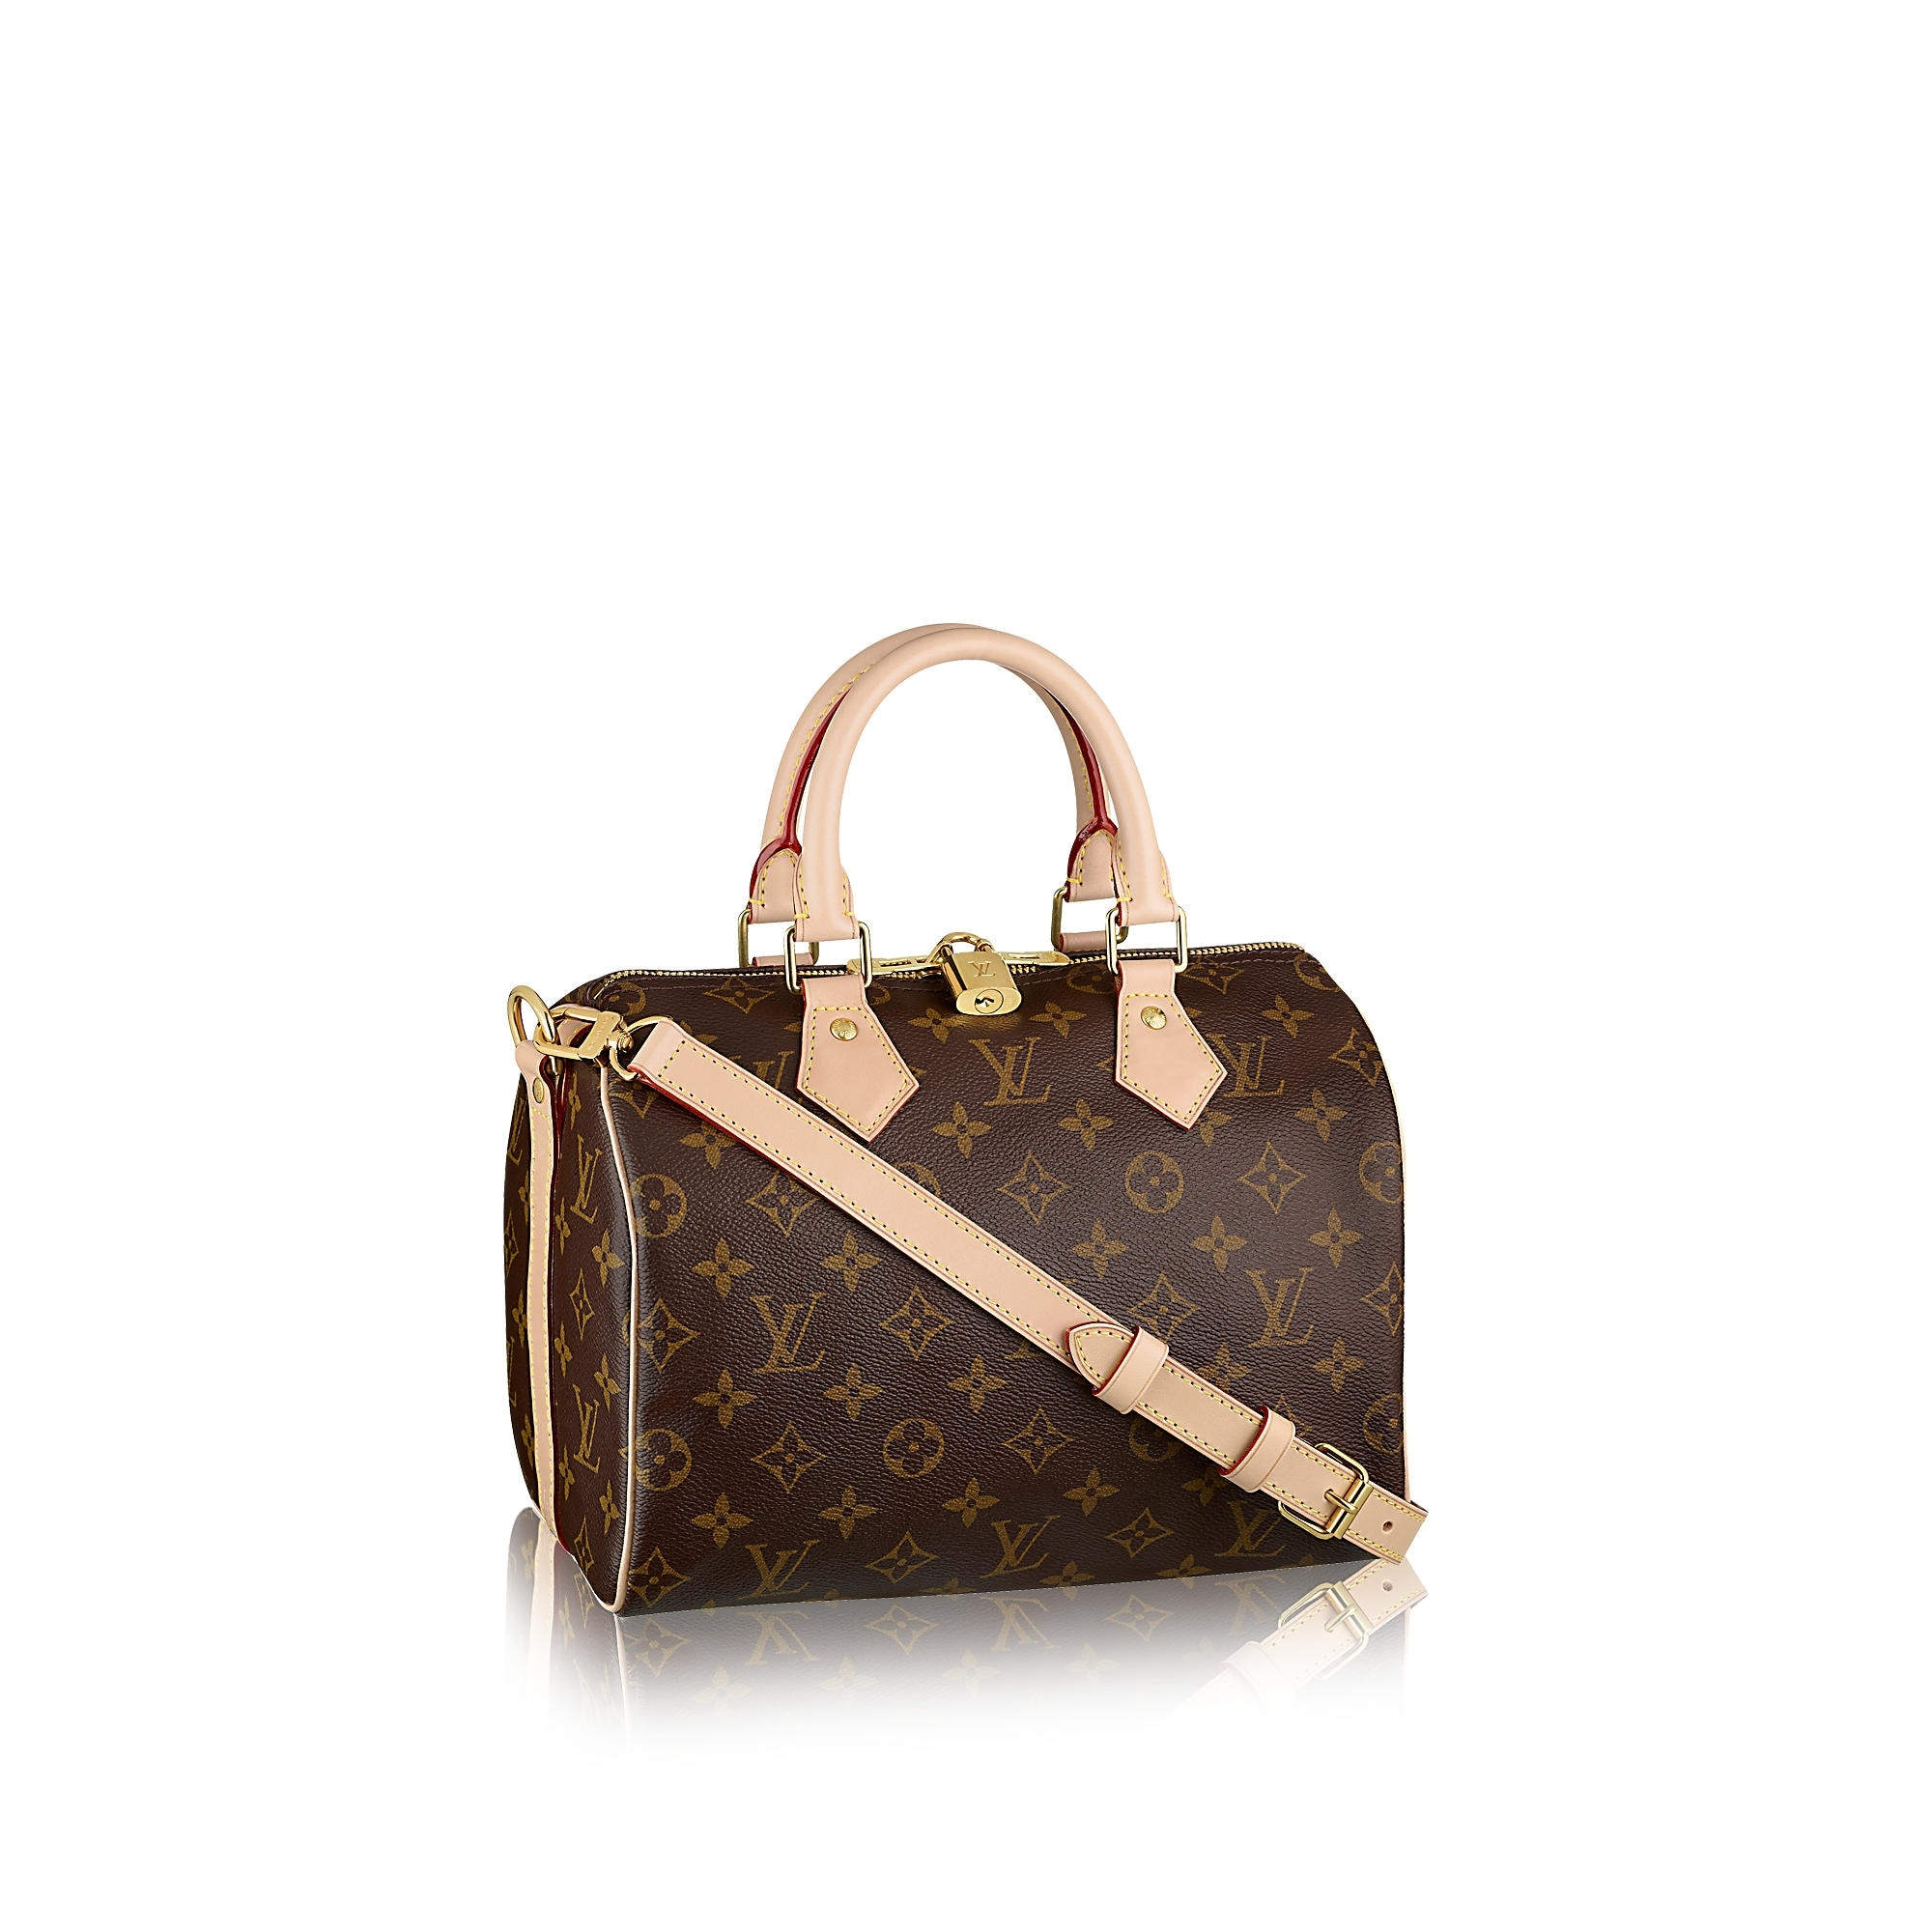 Buy Louis Vuitton Women Speedy Bandouliere 25 Monogram Canvas [M41113],  Features, Price, Reviews Online in India - Justdial